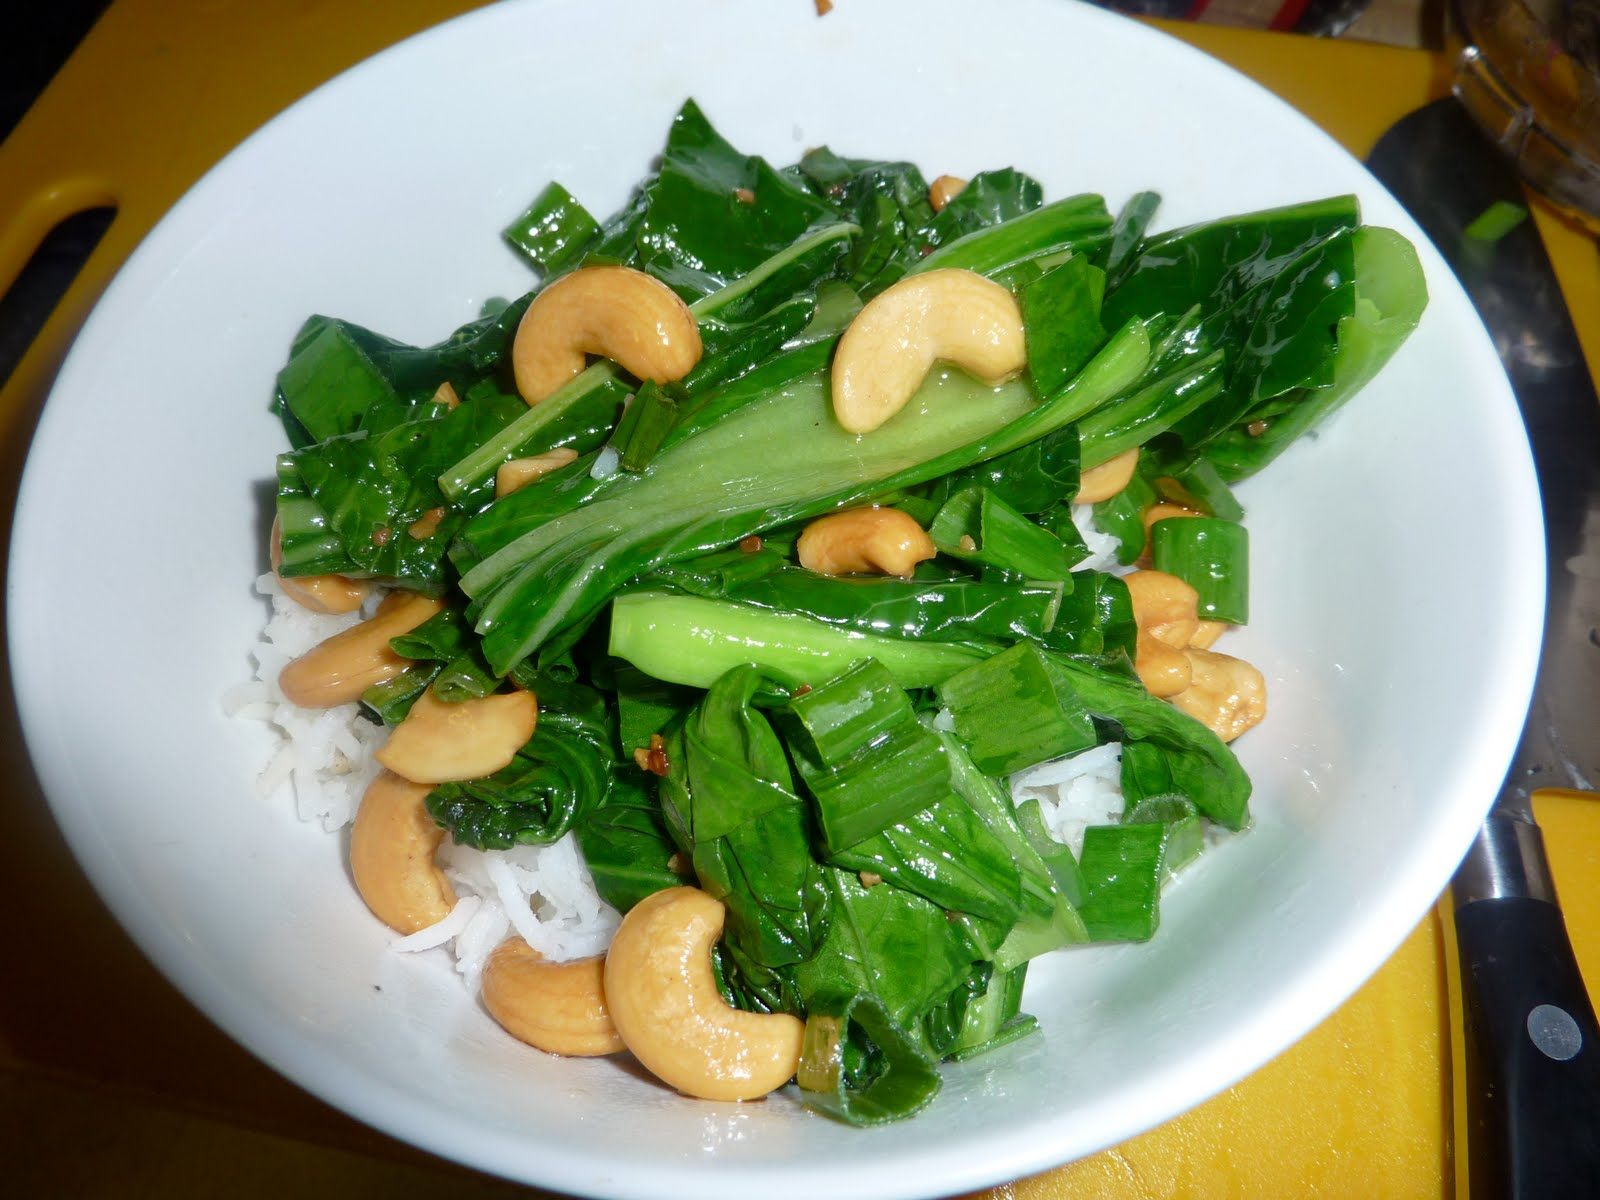 Stir-fry with Broccoli Rabe, Kale and Cashews